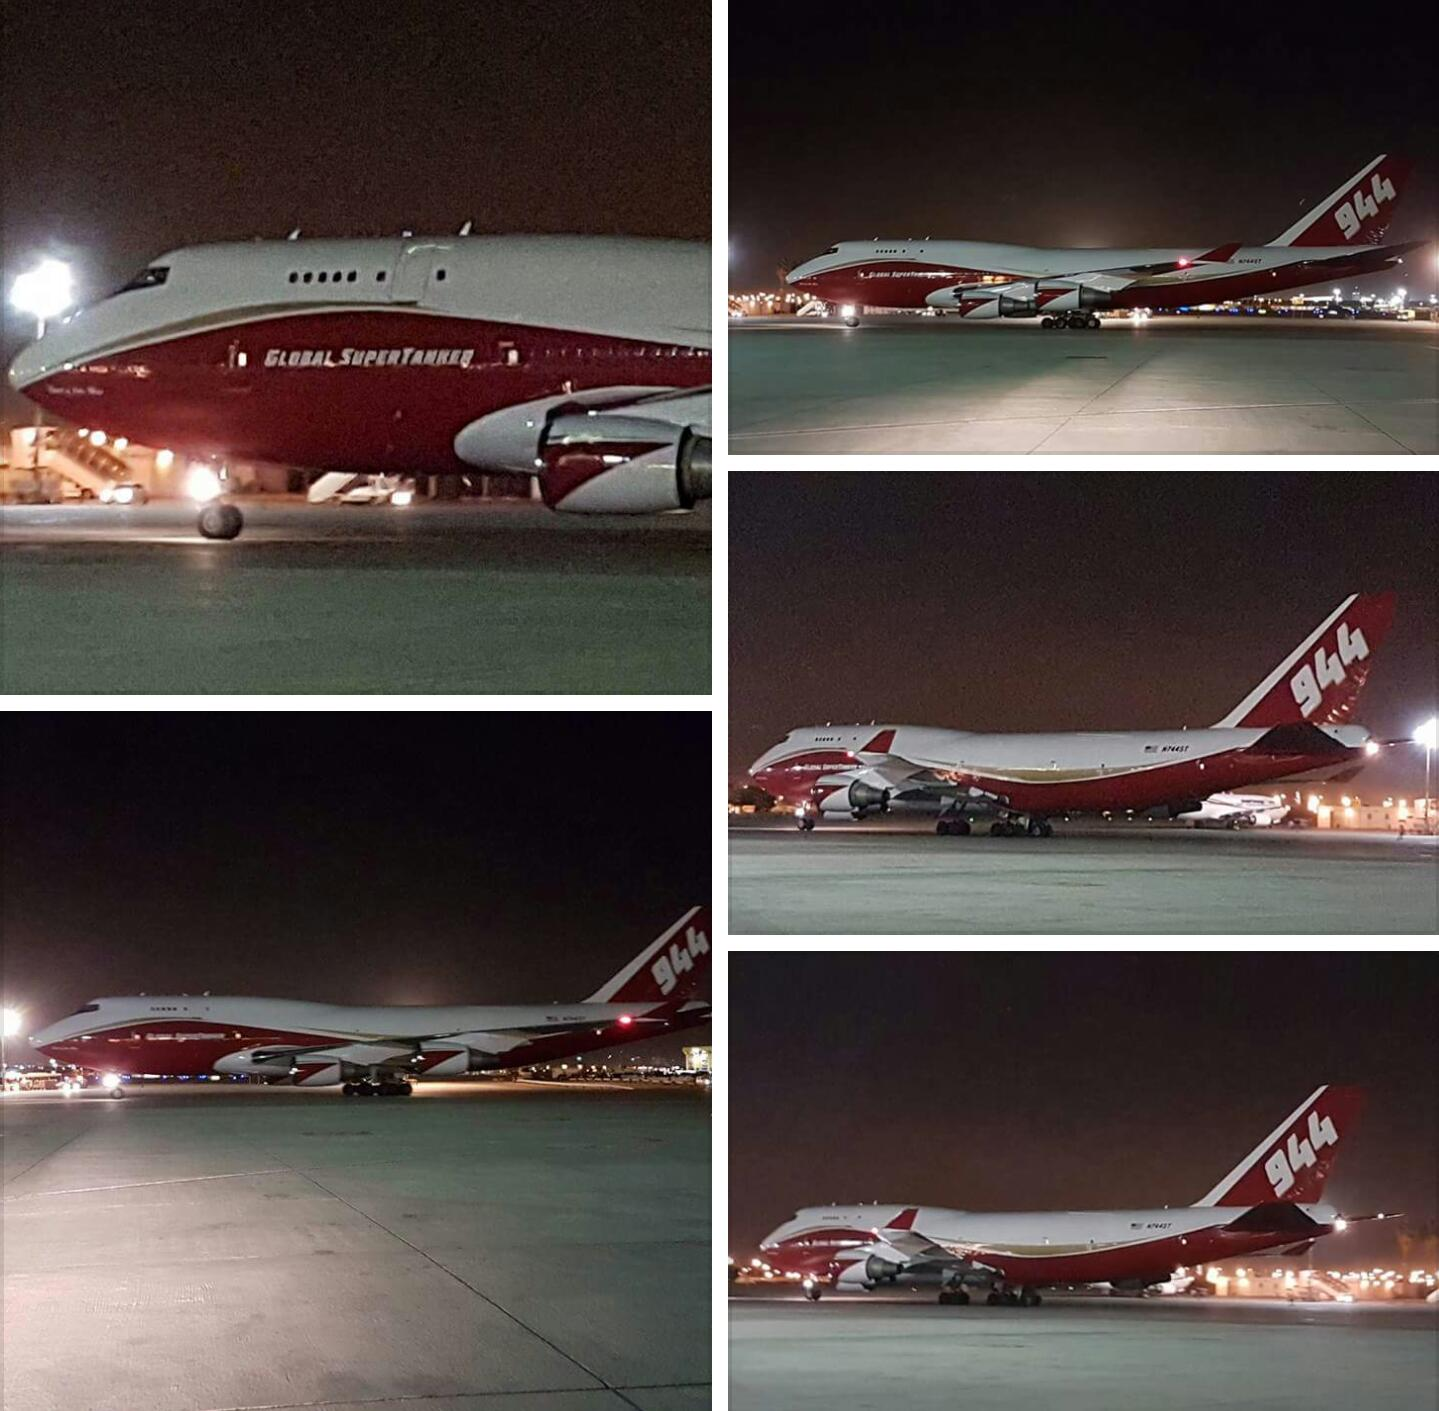 World's Largest Firefighting Plane Lands in Israel ...